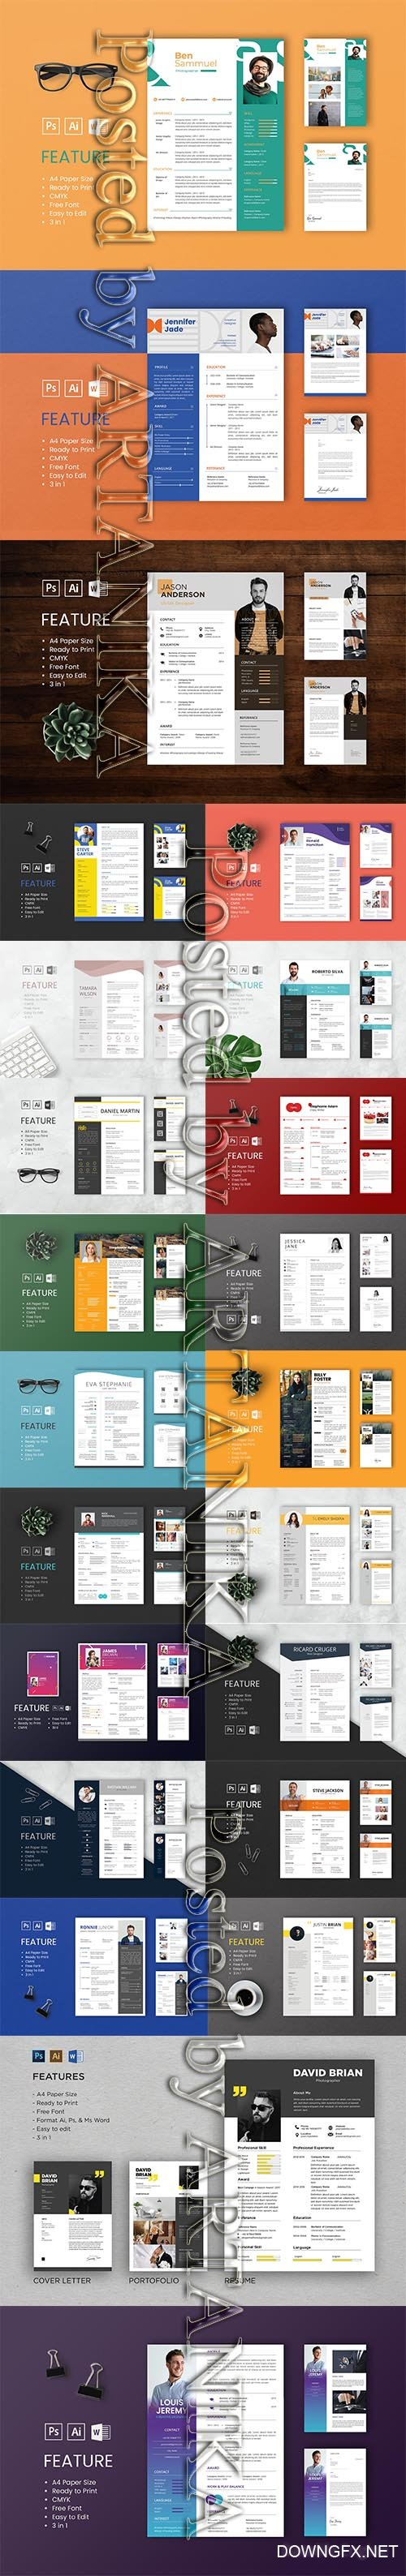 Professional CV and Resume Templates Bundle